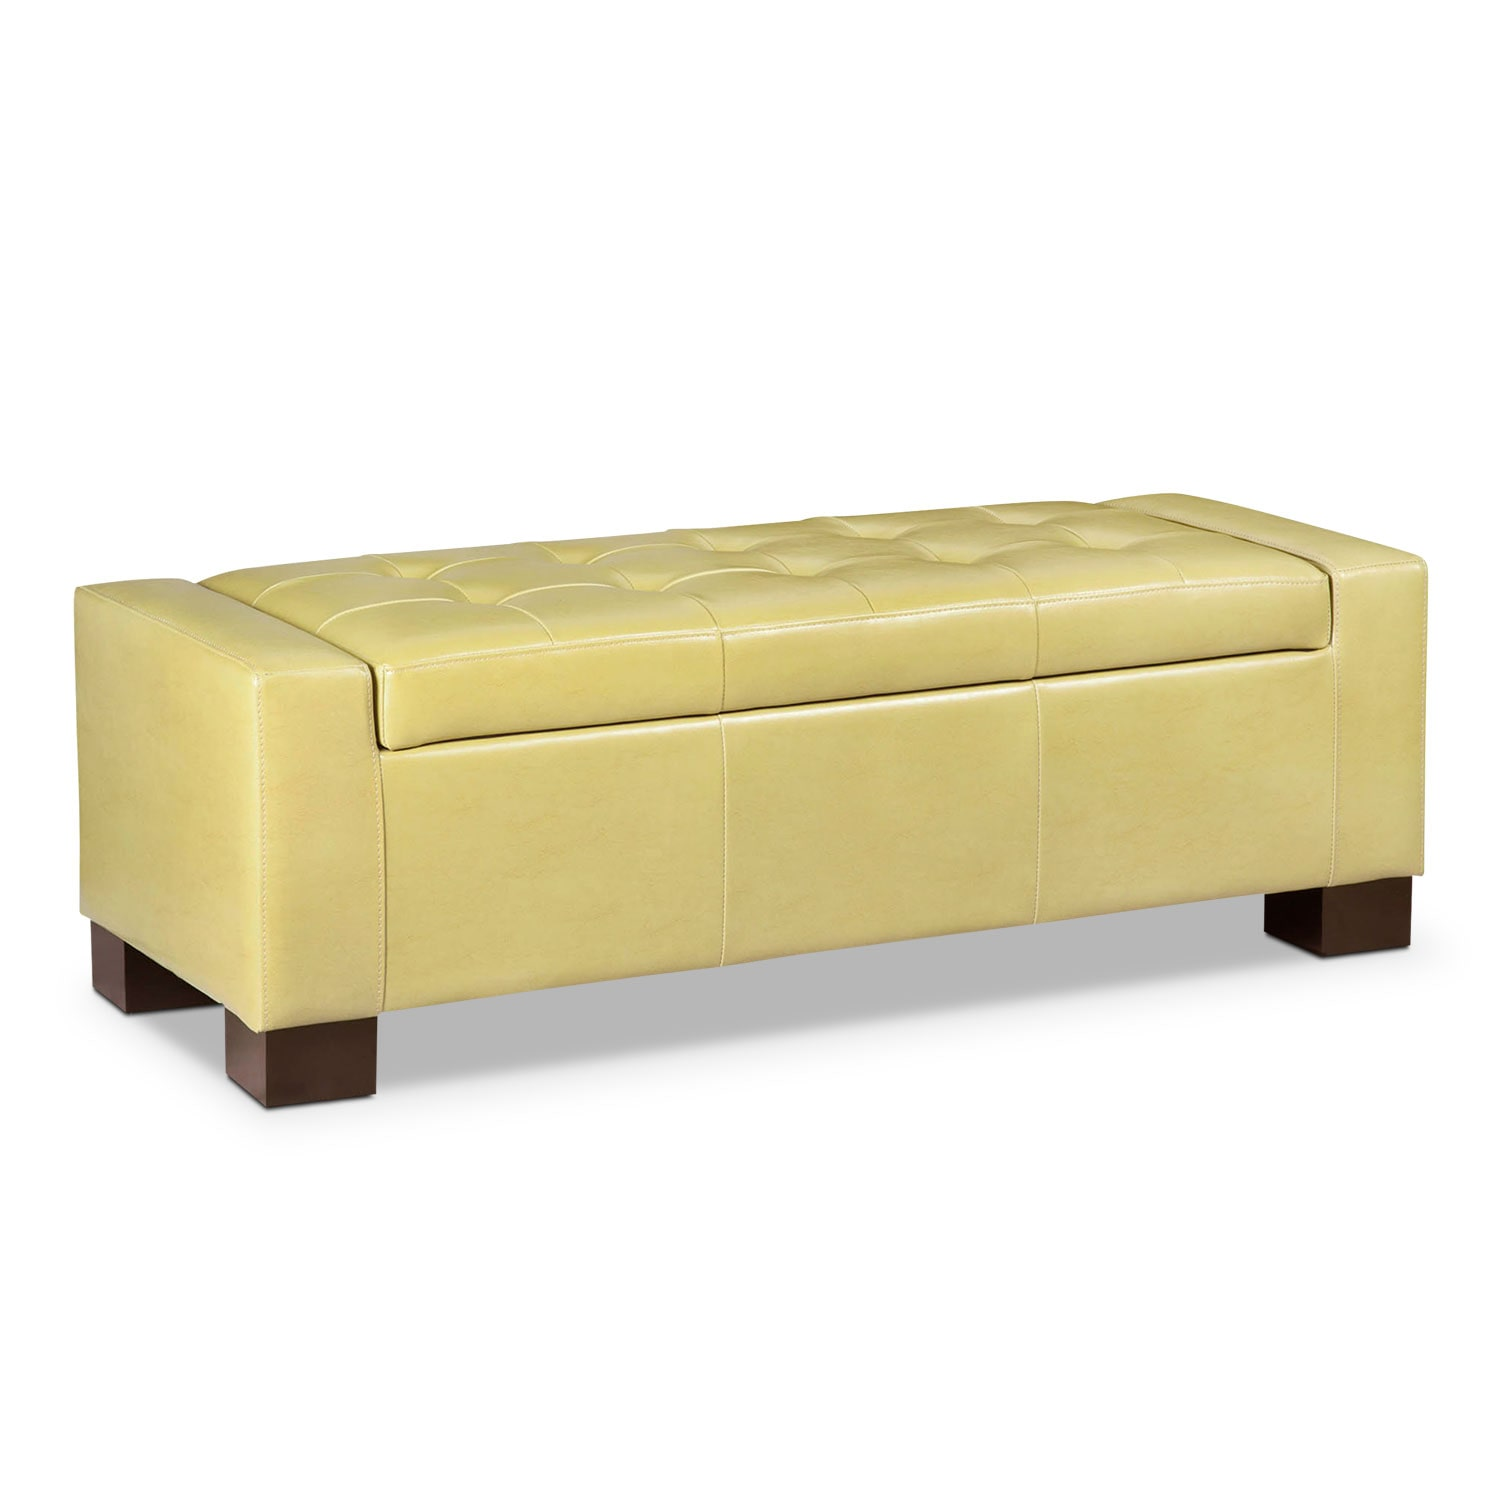 Living Room Furniture - Jive Storage Ottoman - Yellow